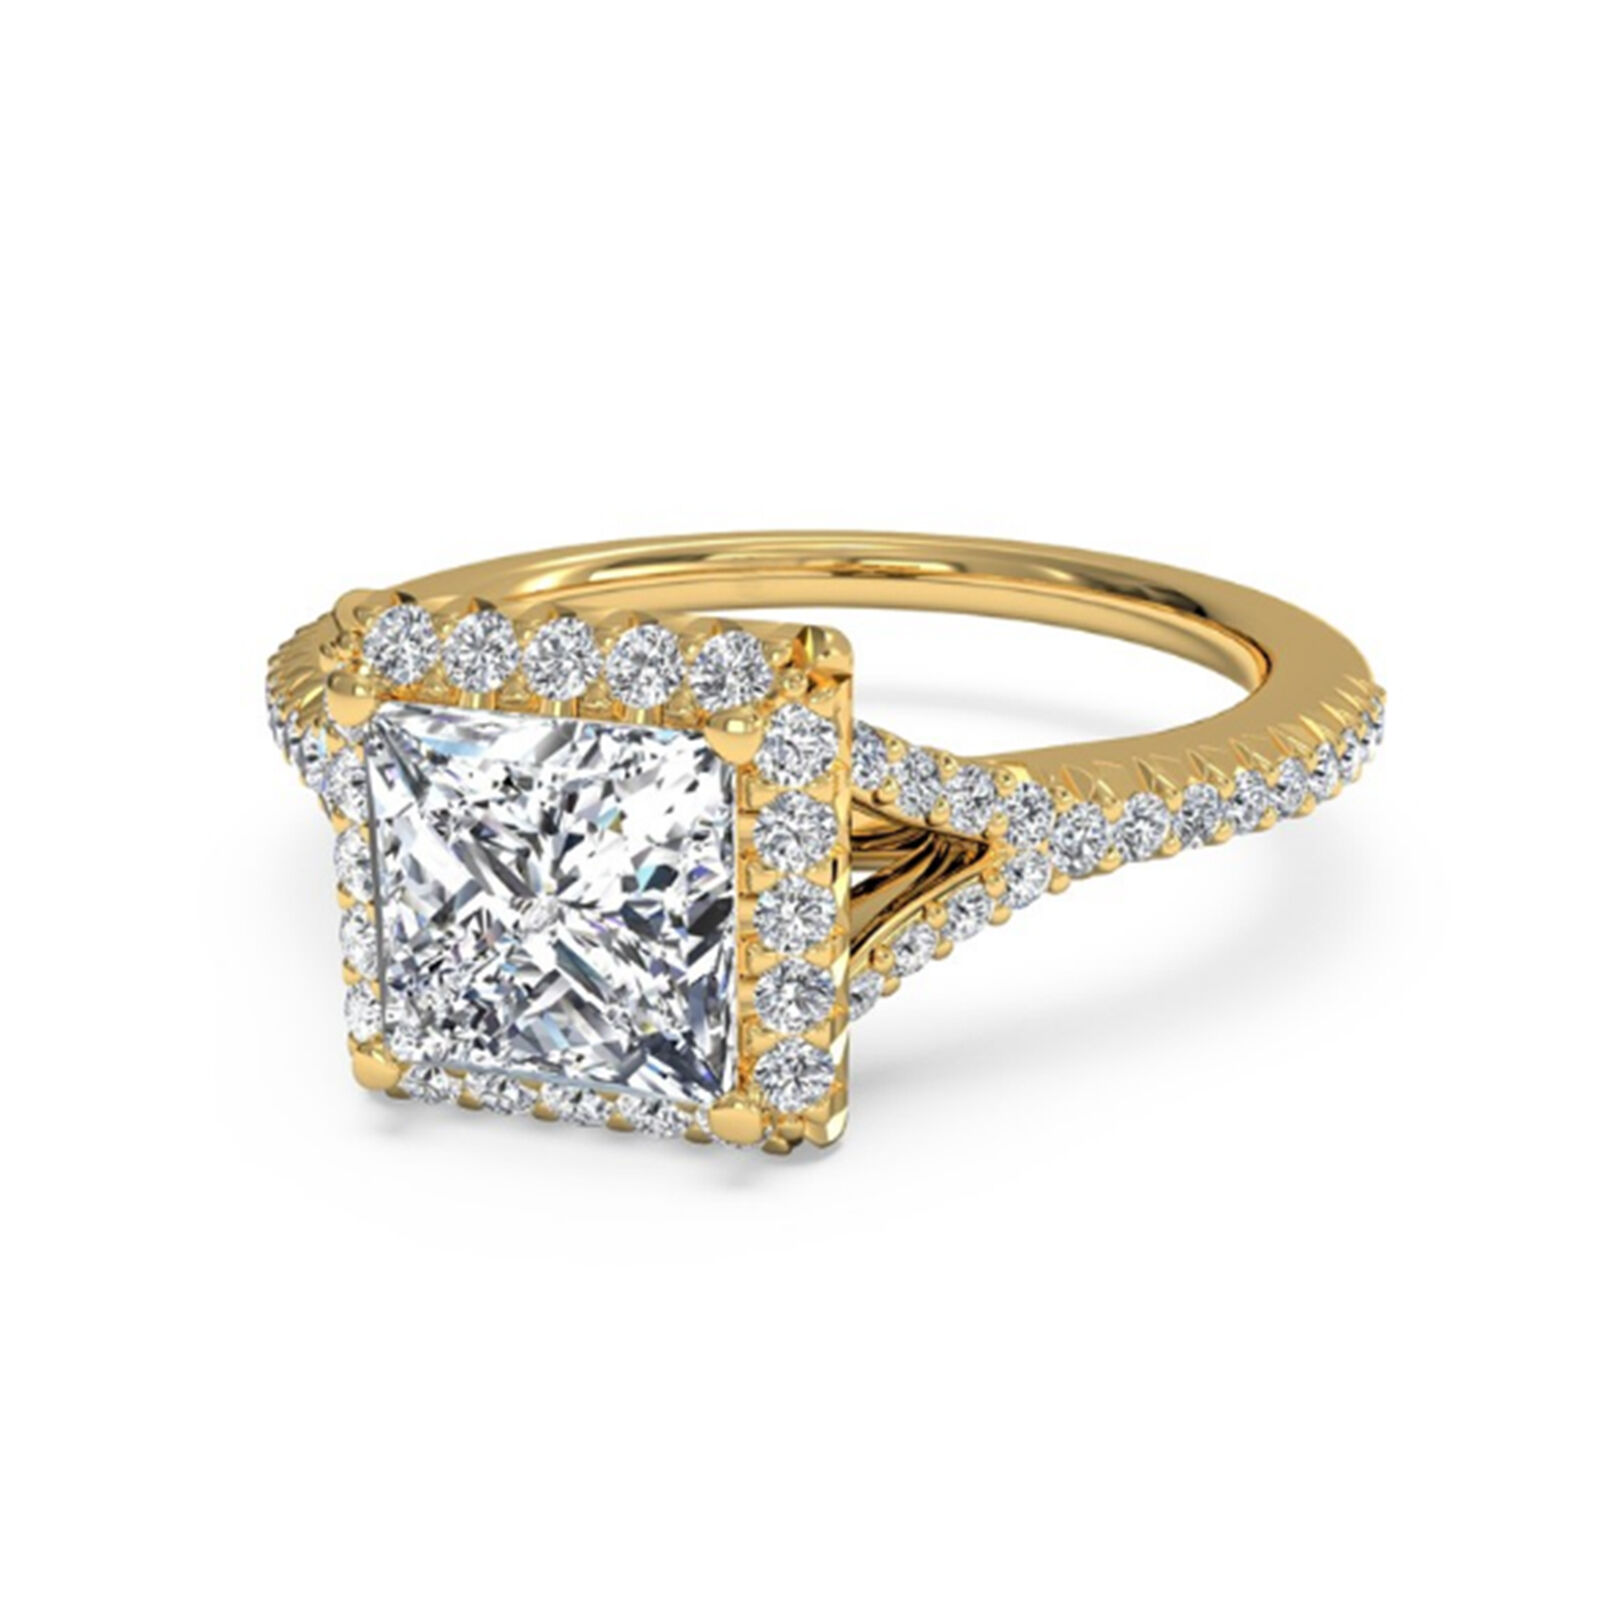 1.10ct Princess Cut Diamond Engagement Ring 14K Yellow gold Size 8 VVS1 D Round